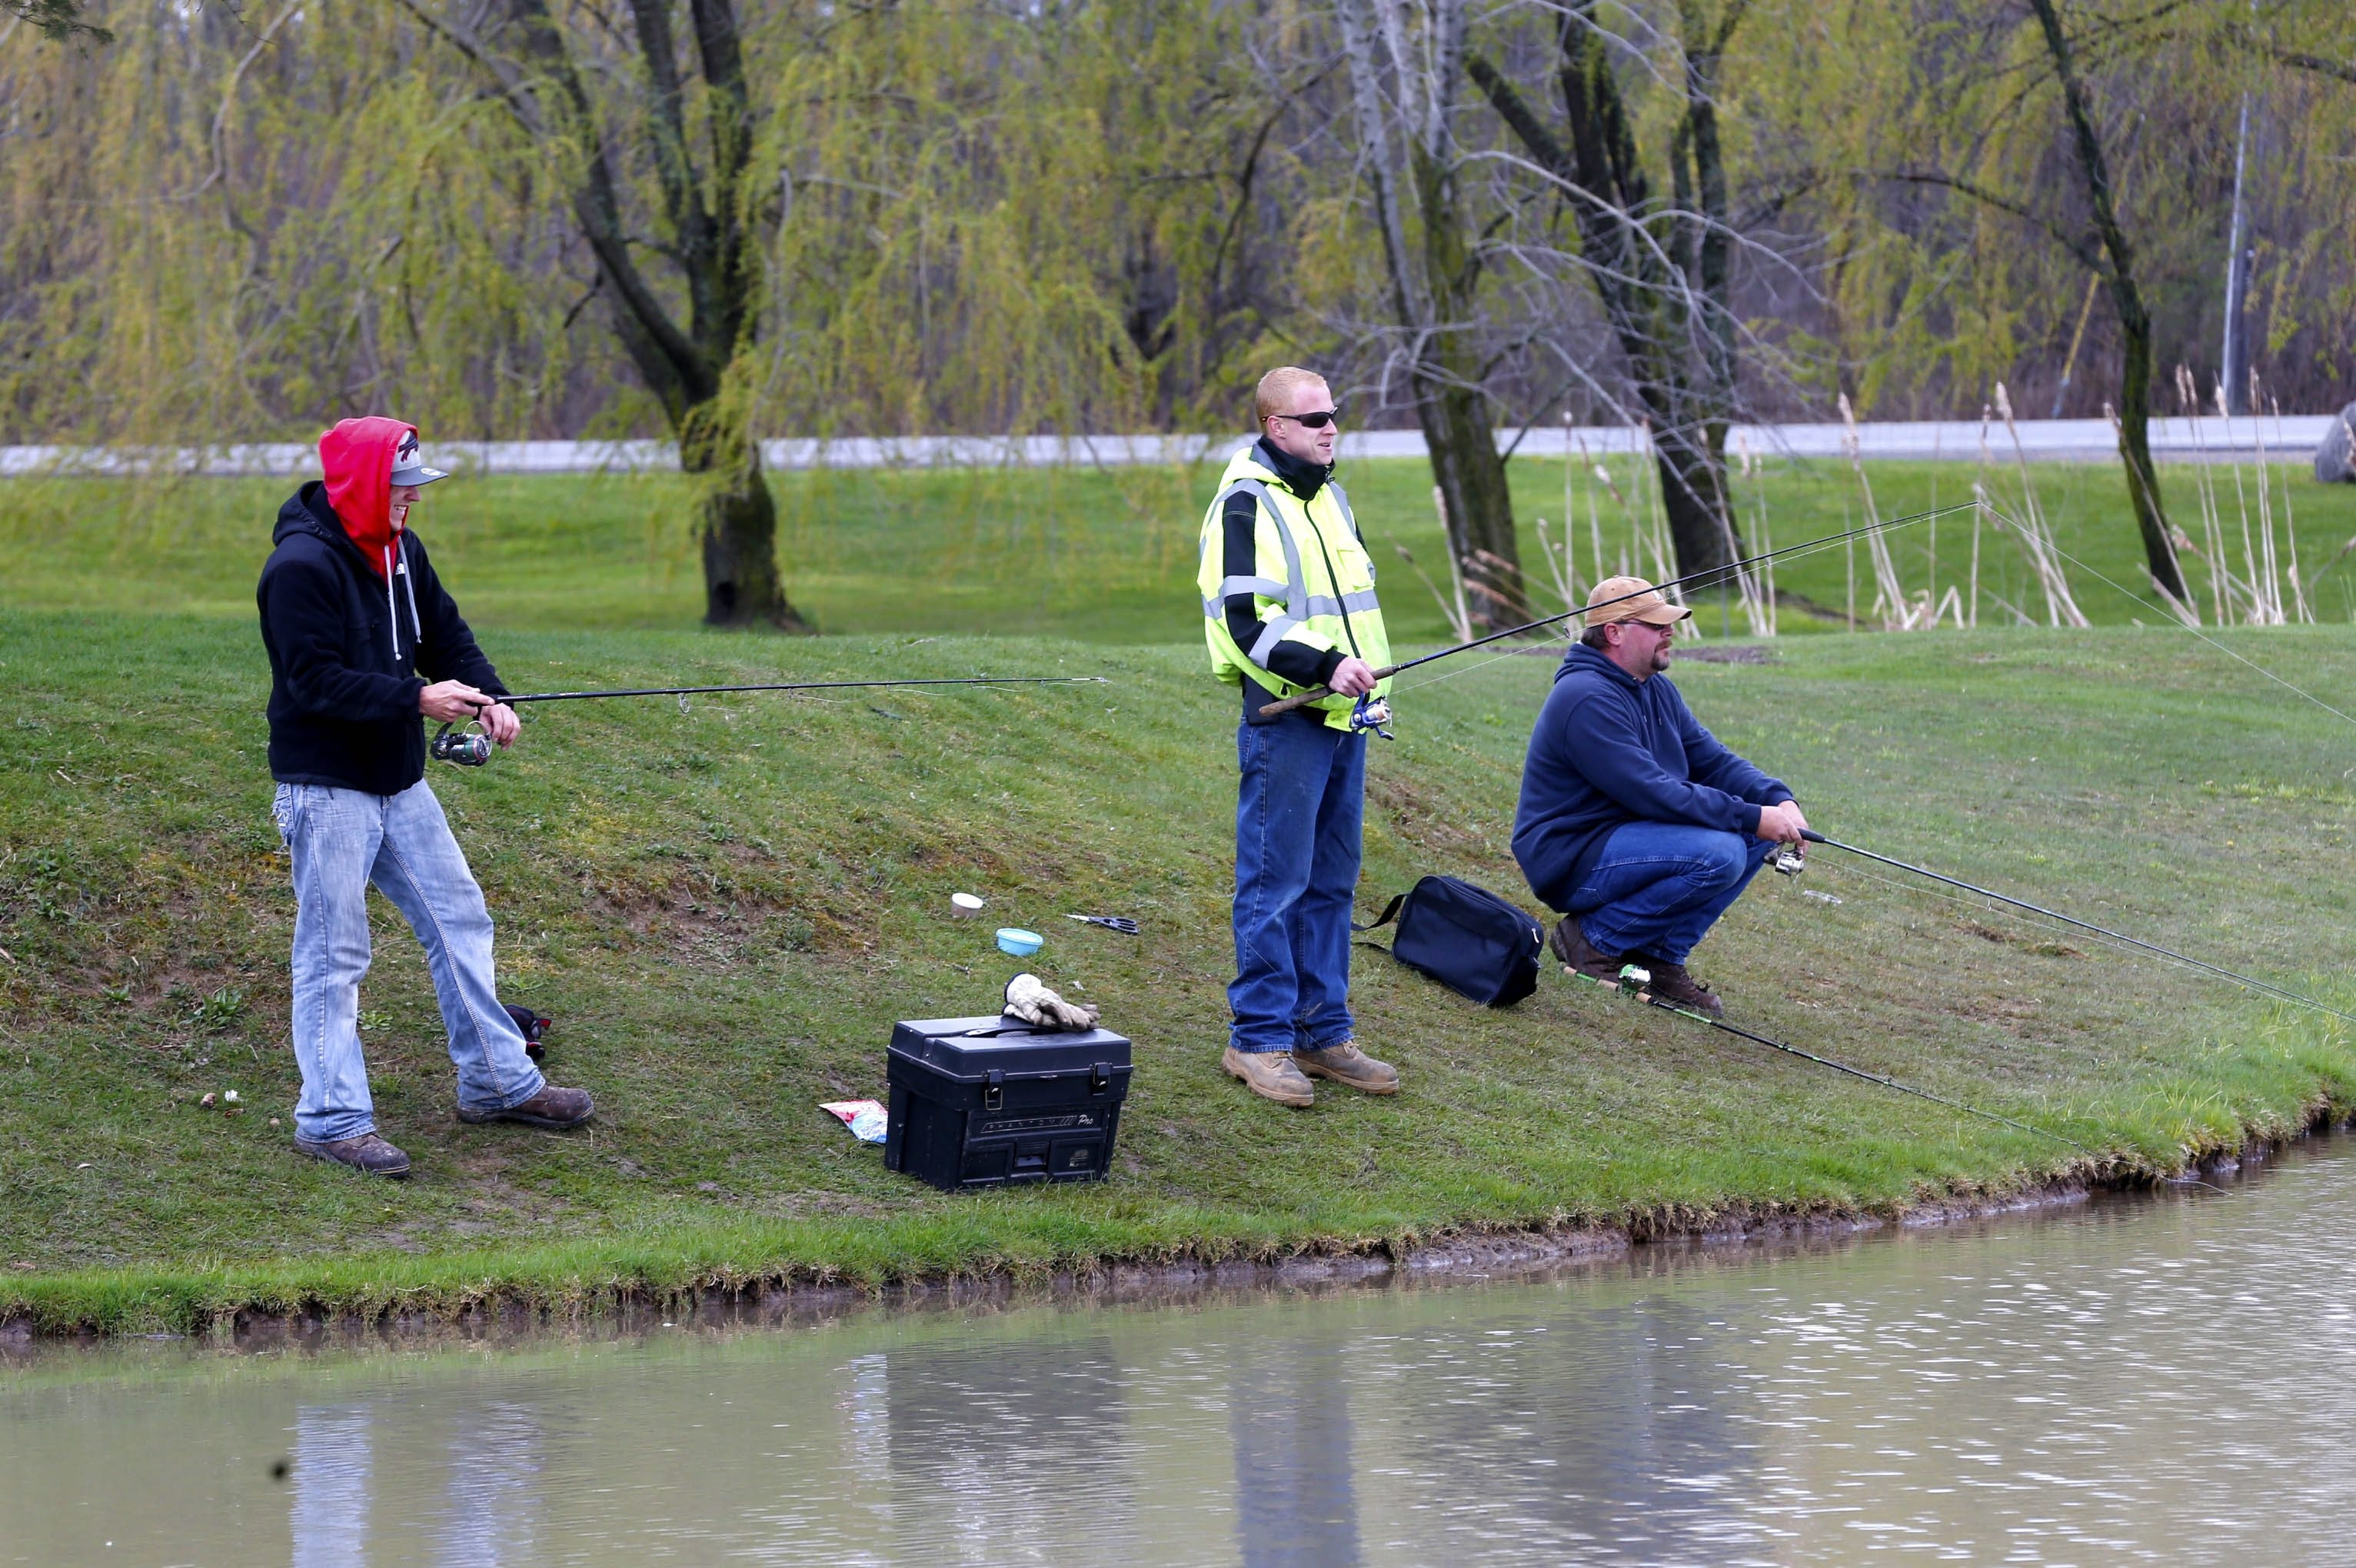 From left, brothers Mark and Cody Heuser of the Town of Tonawanda and friend Dennis King of North Tonawanda do a little fishing at the pond at Oppenheim Park on Niagara Falls Blvd. in Niagara Falls (Robert Kirkham/Buffalo News)